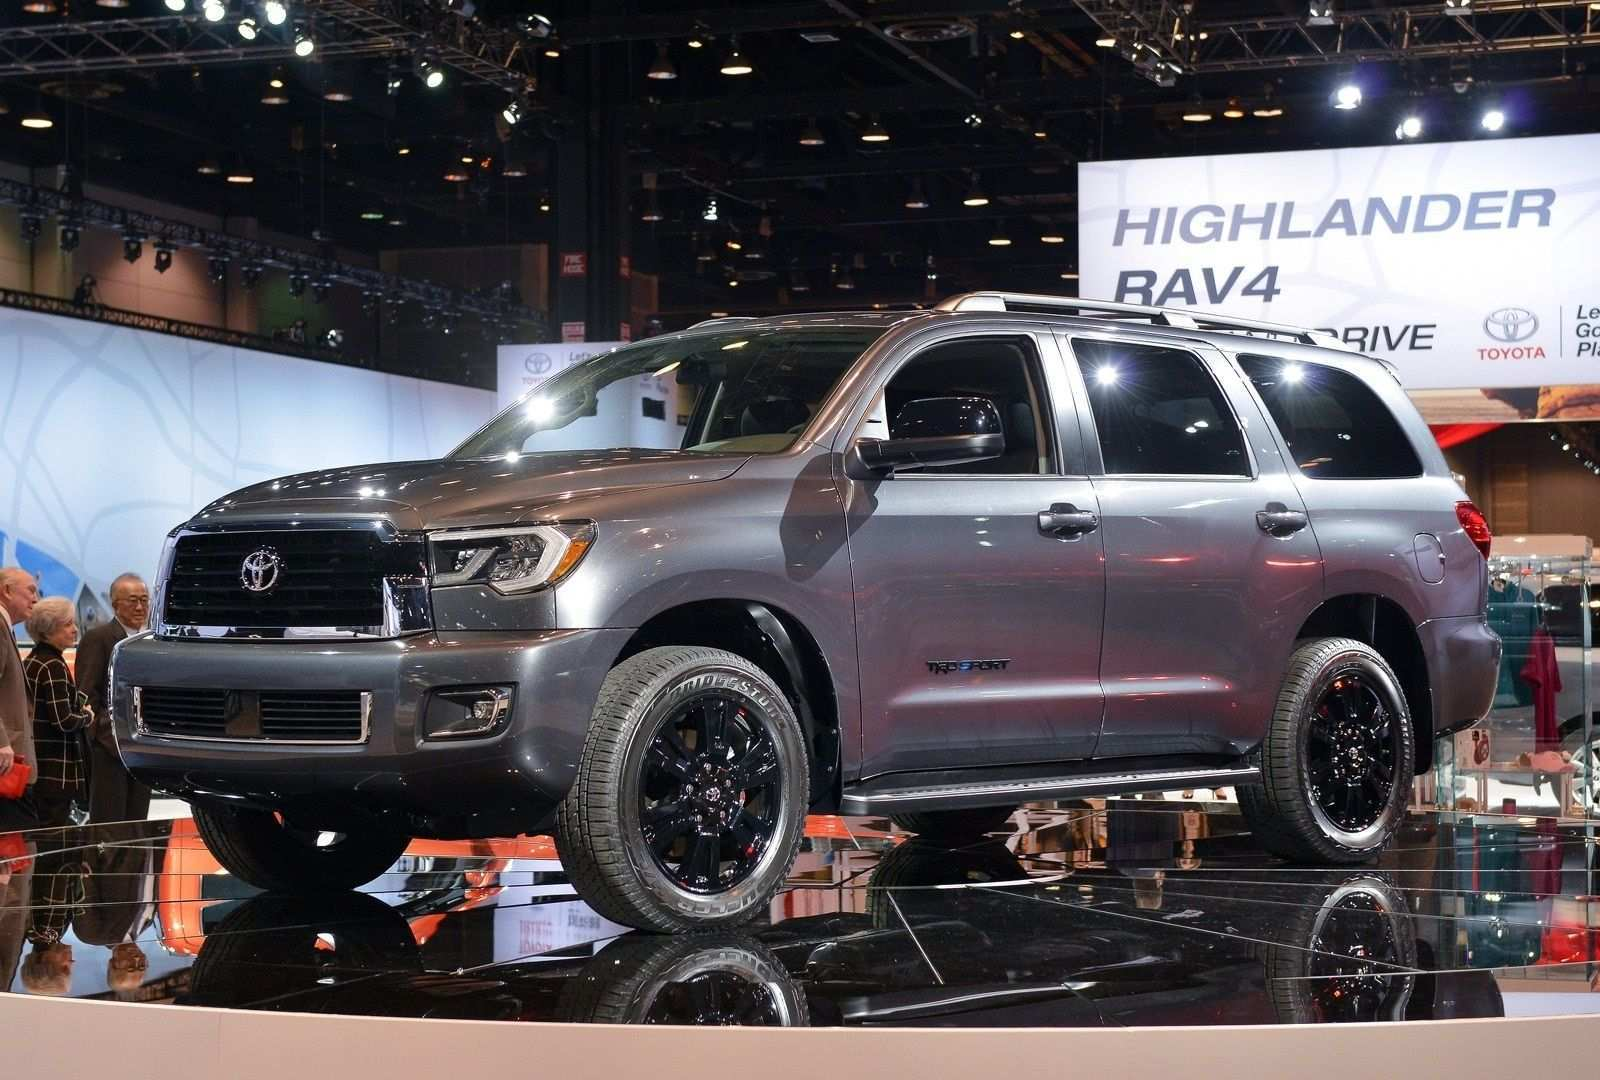 57 New 2020 Toyota Highlander Concept Rumors with 2020 Toyota Highlander Concept